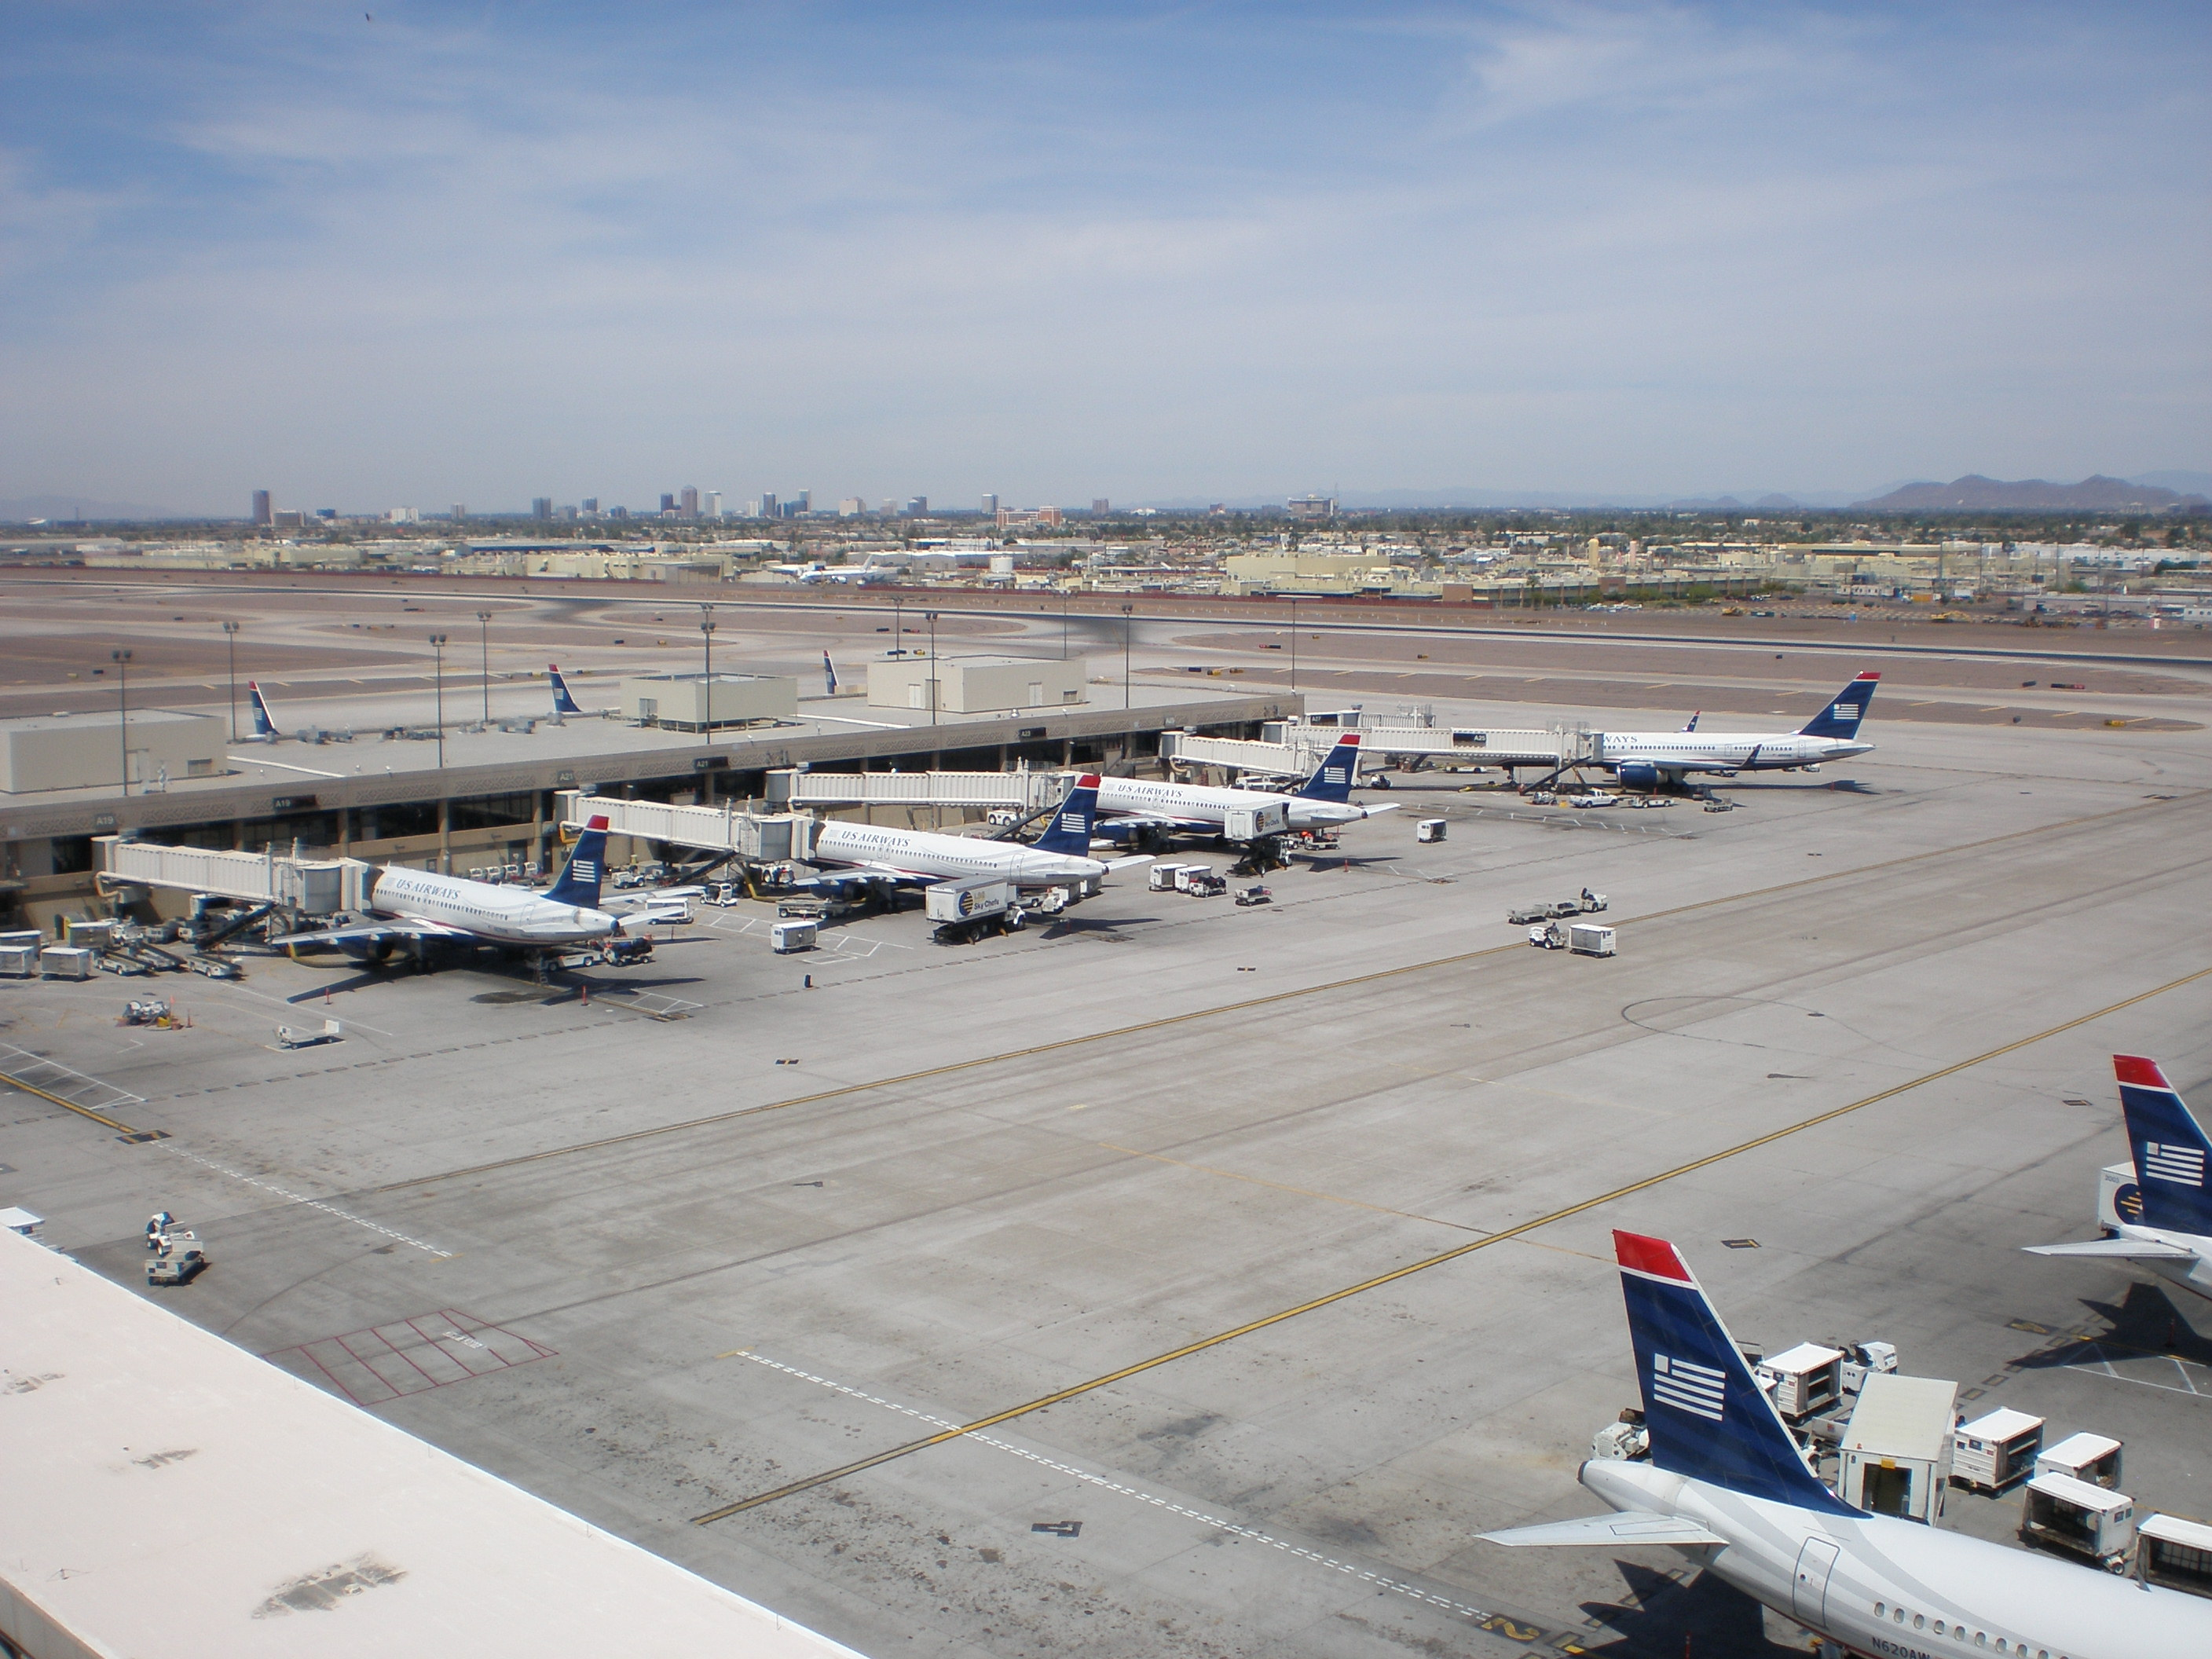 FileUS Airways Planes At T At PHXJPG Wikimedia Commons - Us airways travel map